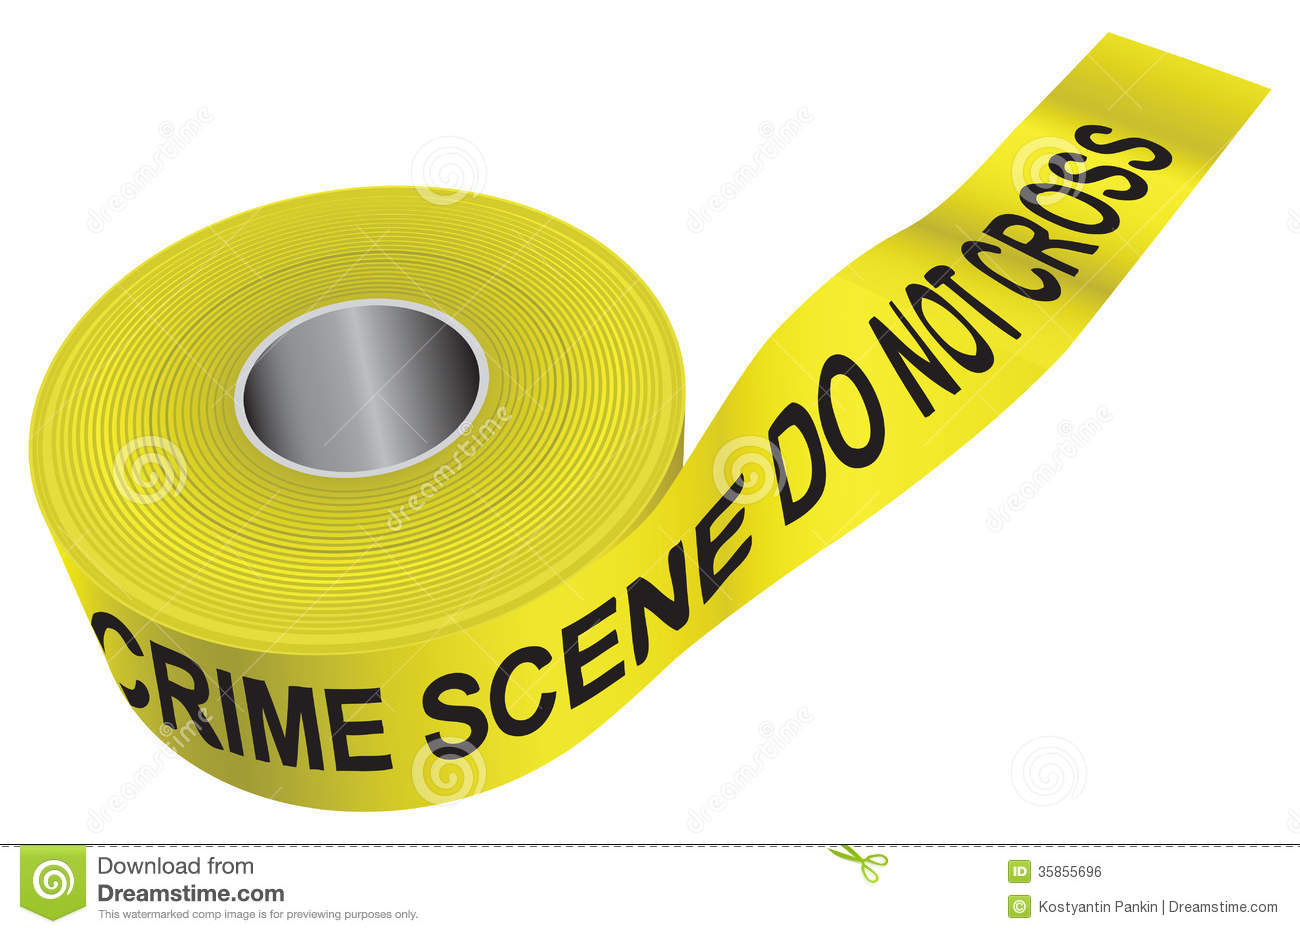 Crime Scene Tape Royalty Free Stock Image - Image: 35855696